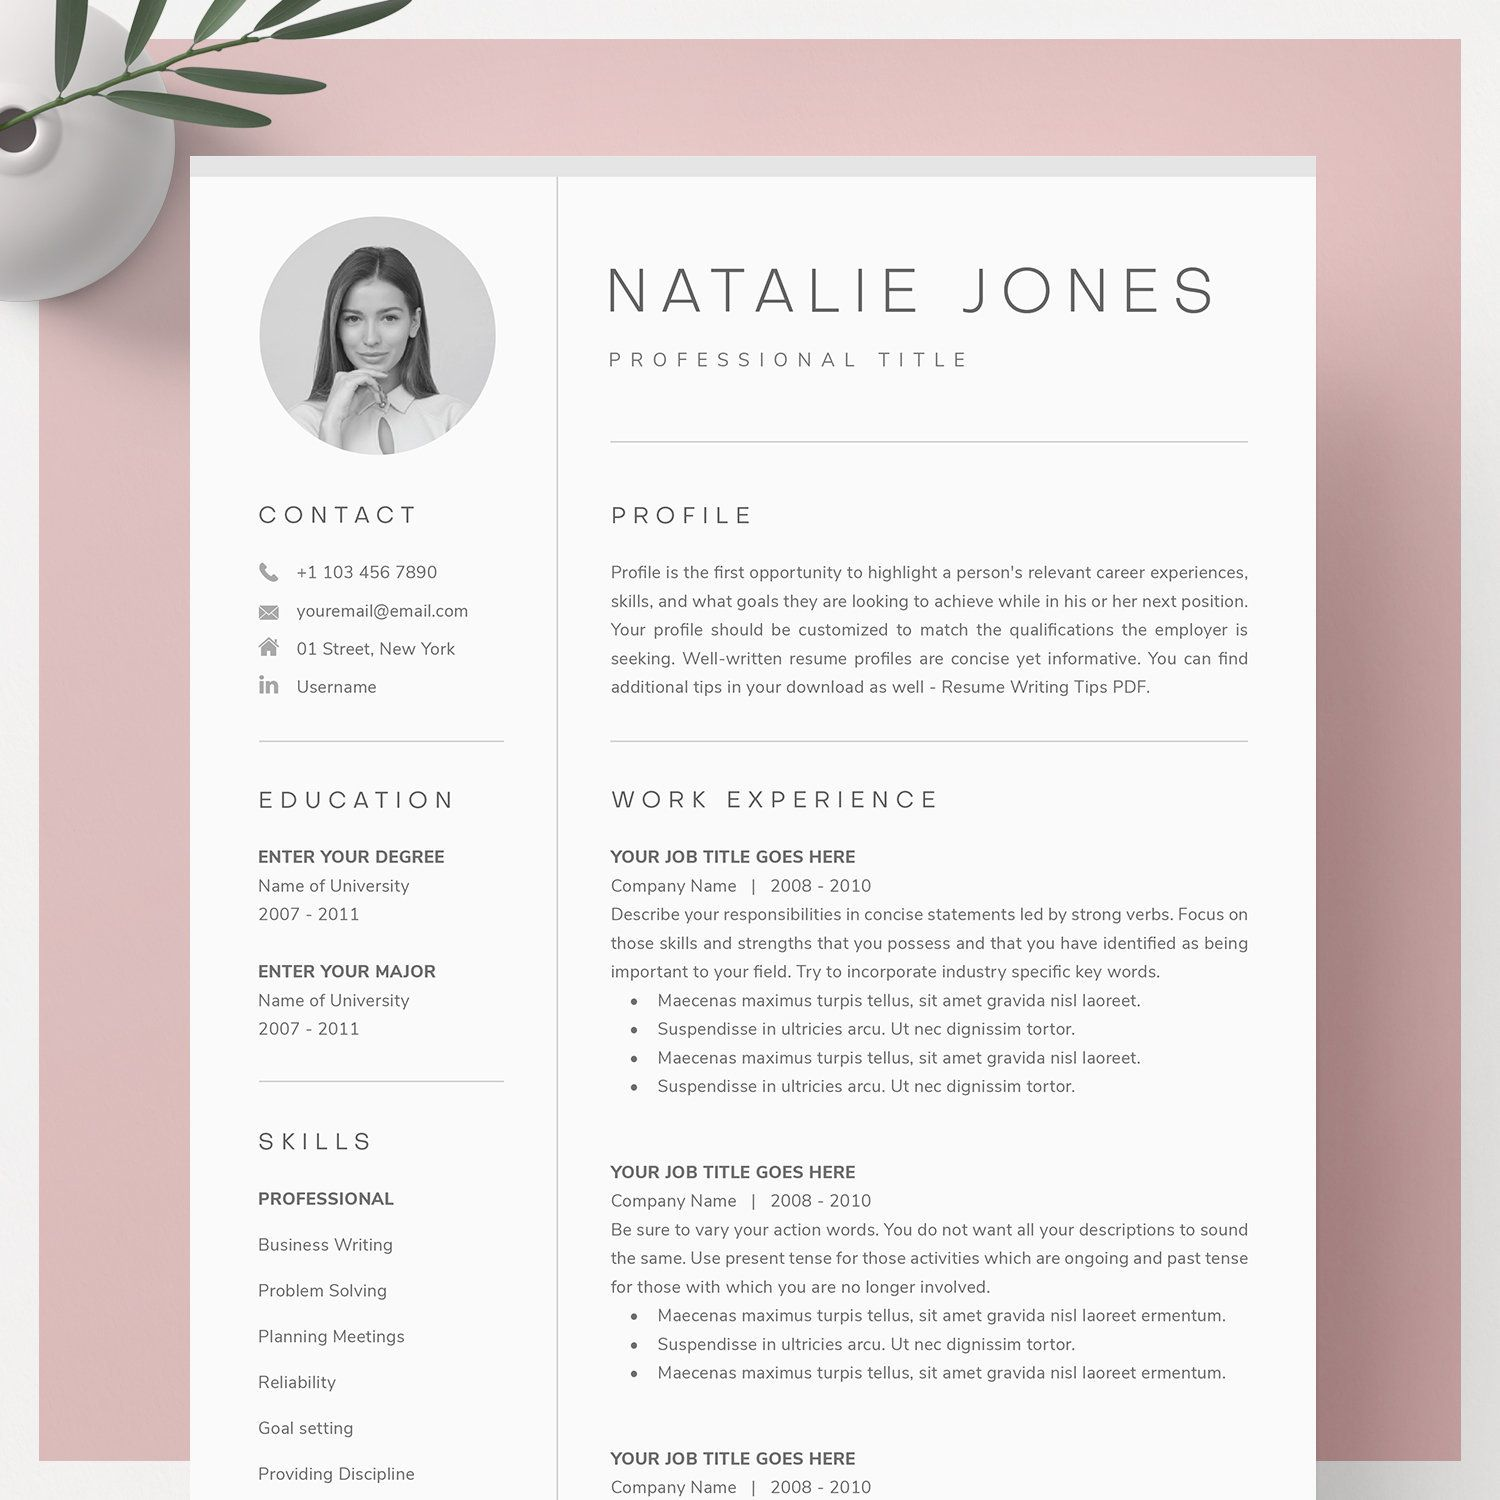 Resume Template for Word, Pages + Cover Letter Template + References Template | CV Template | Resume with Photo, Professional Resume, Resume